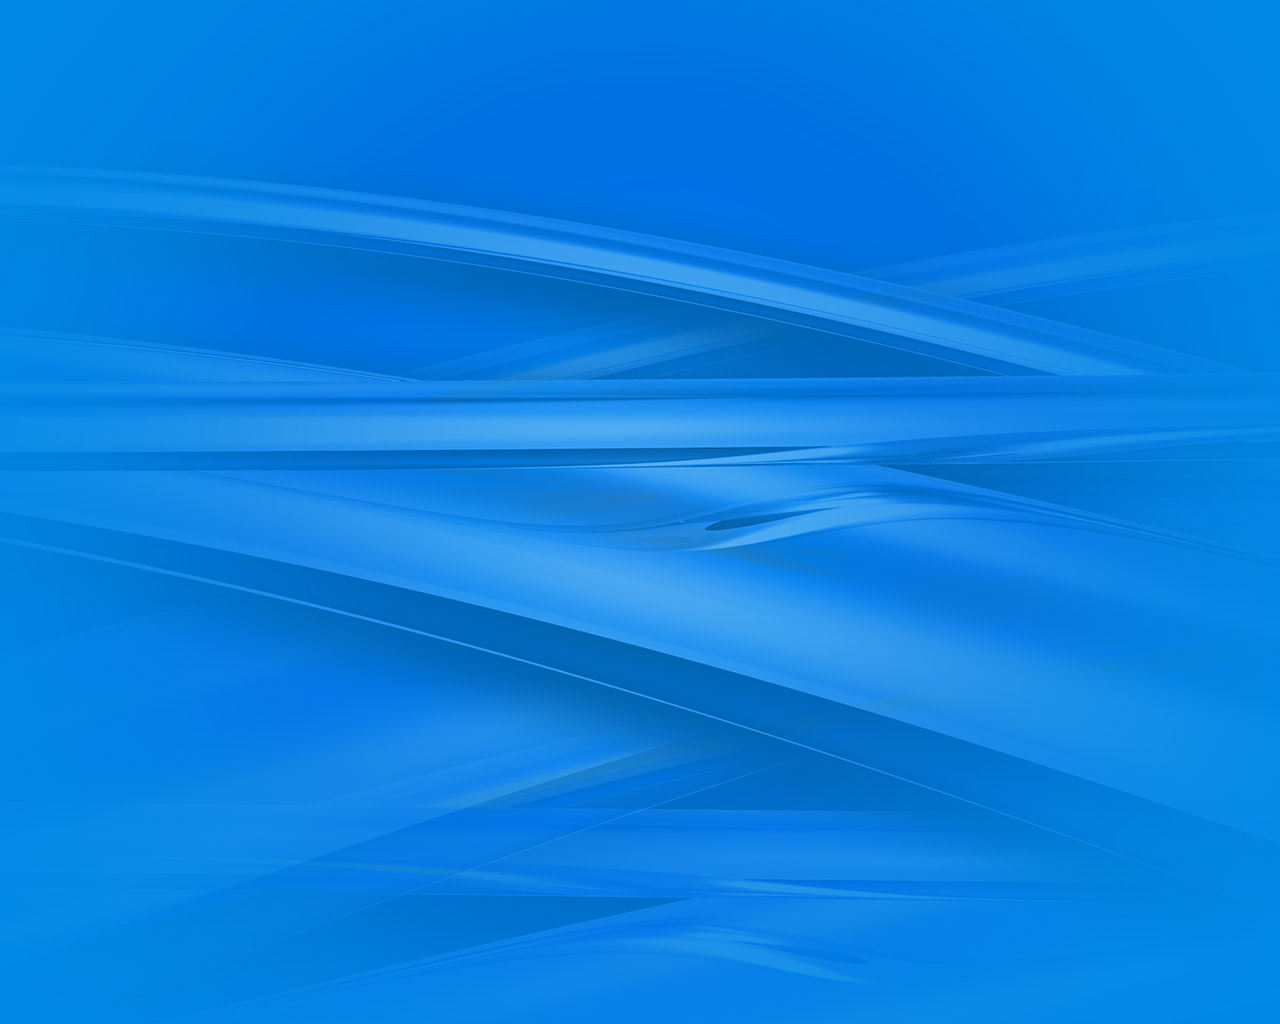 Metallic Blue Wallpaper Wallpapersafari